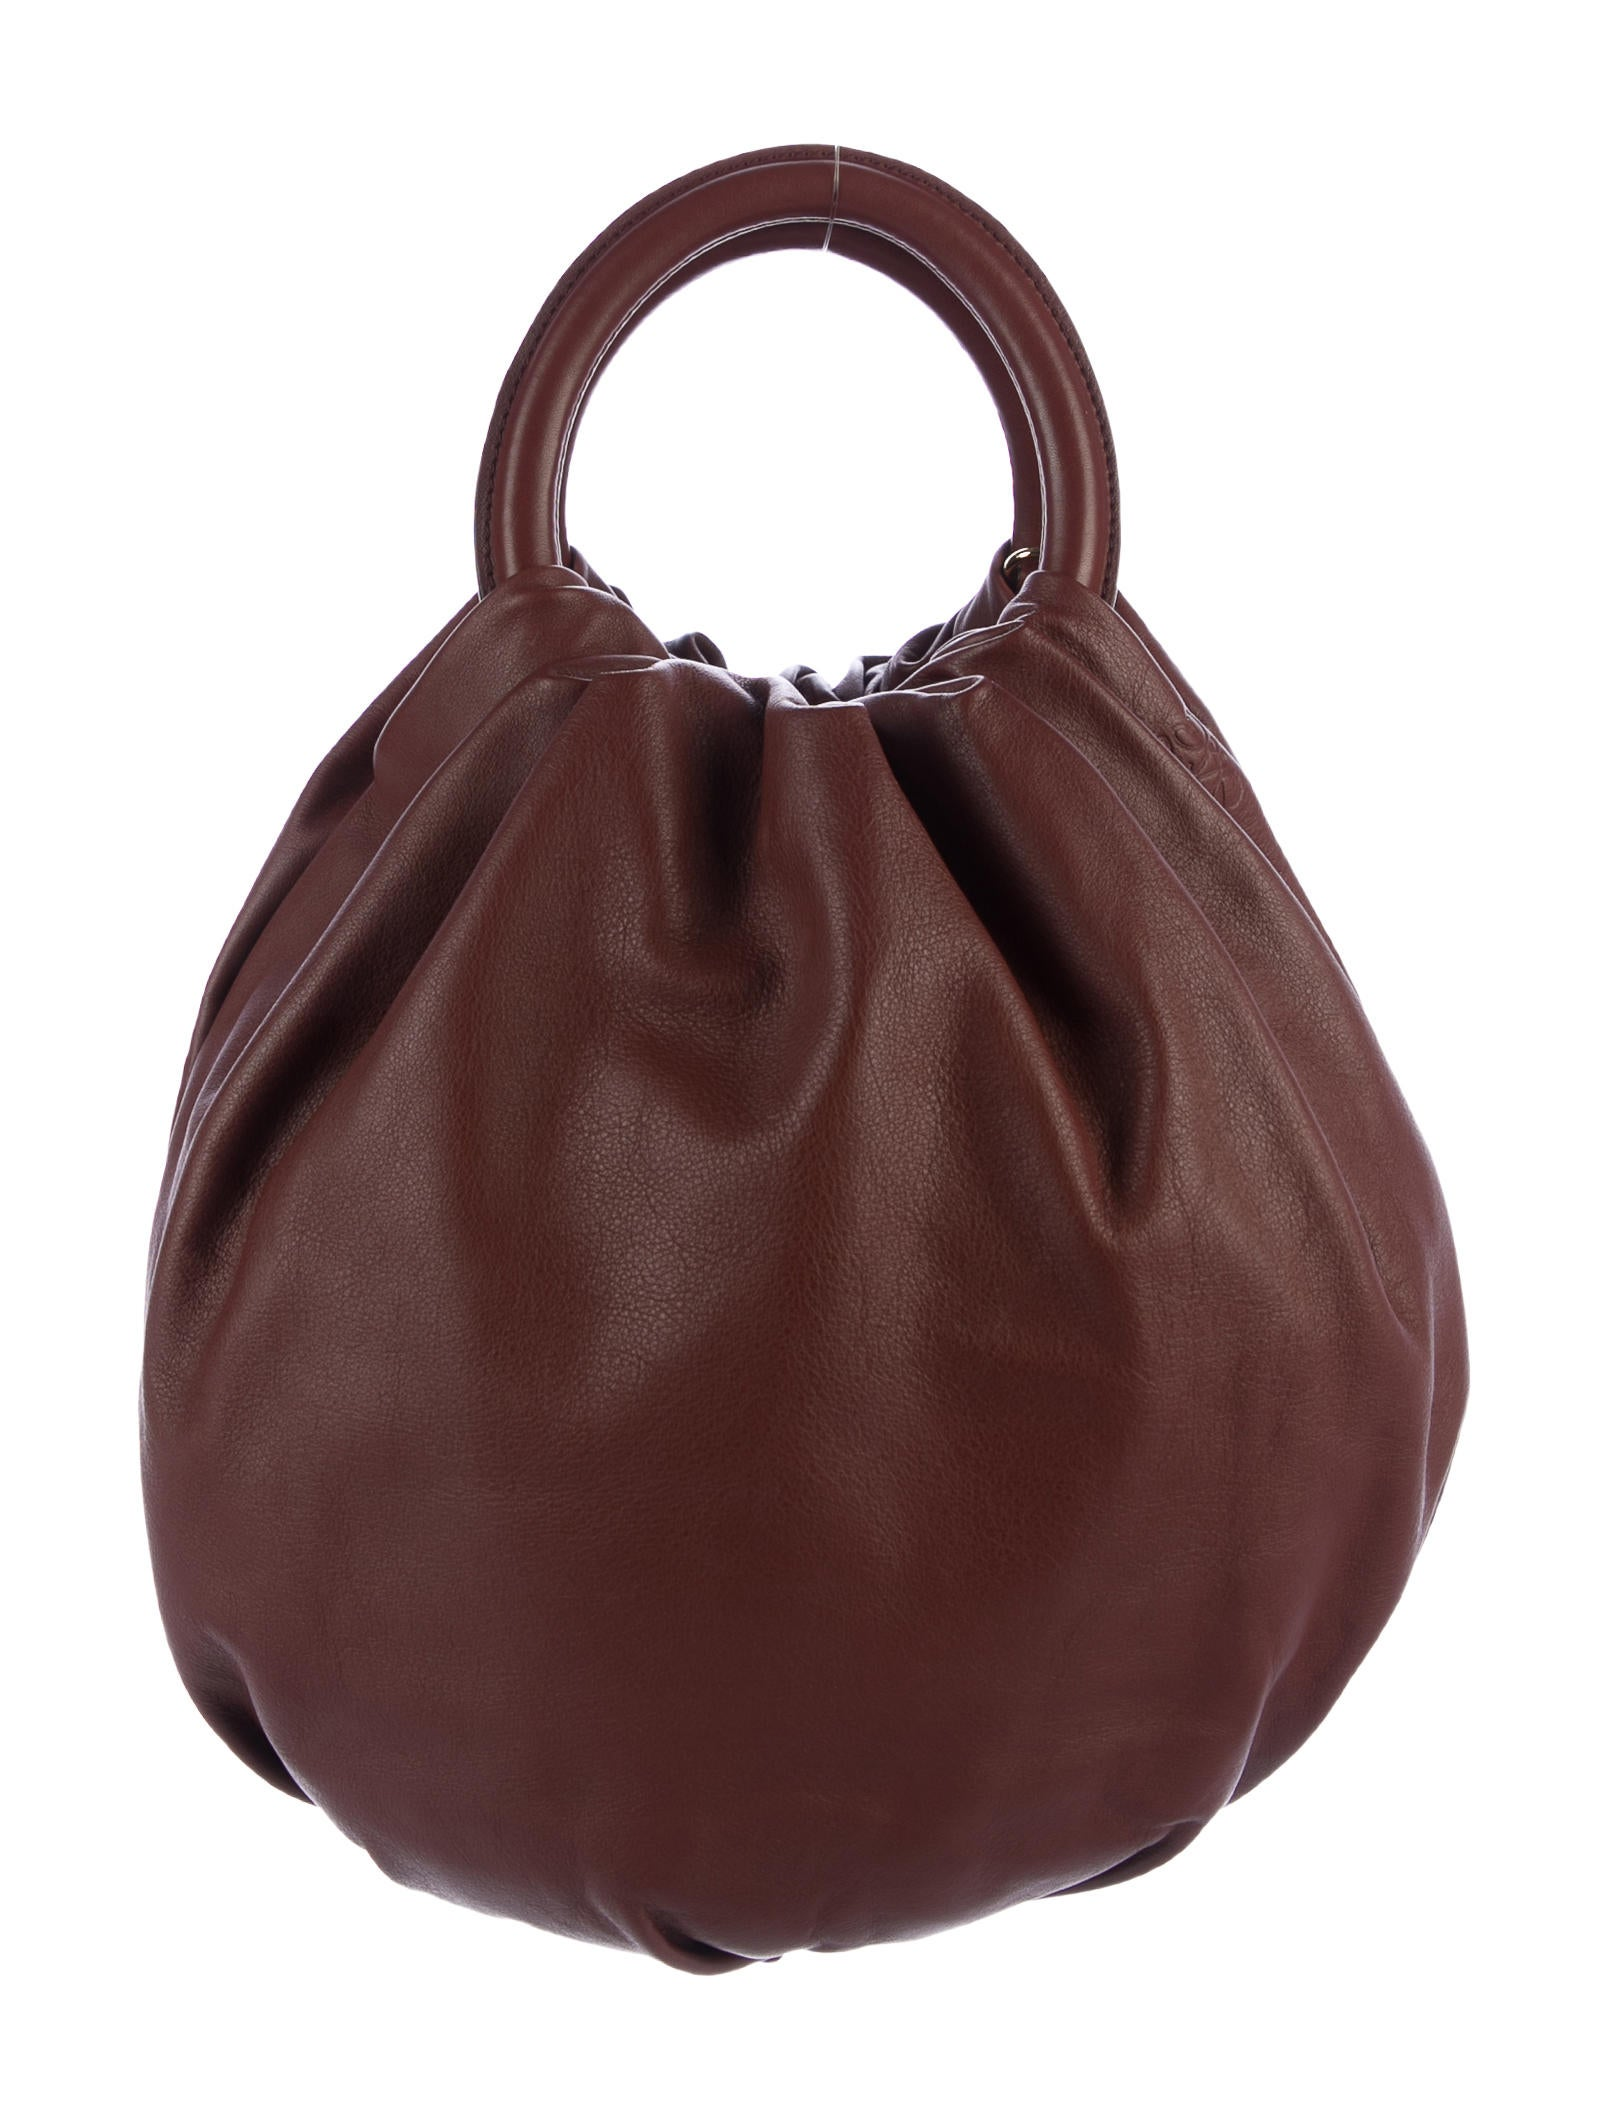 6d9f2bb9f7c4 Leather Bounce Bag